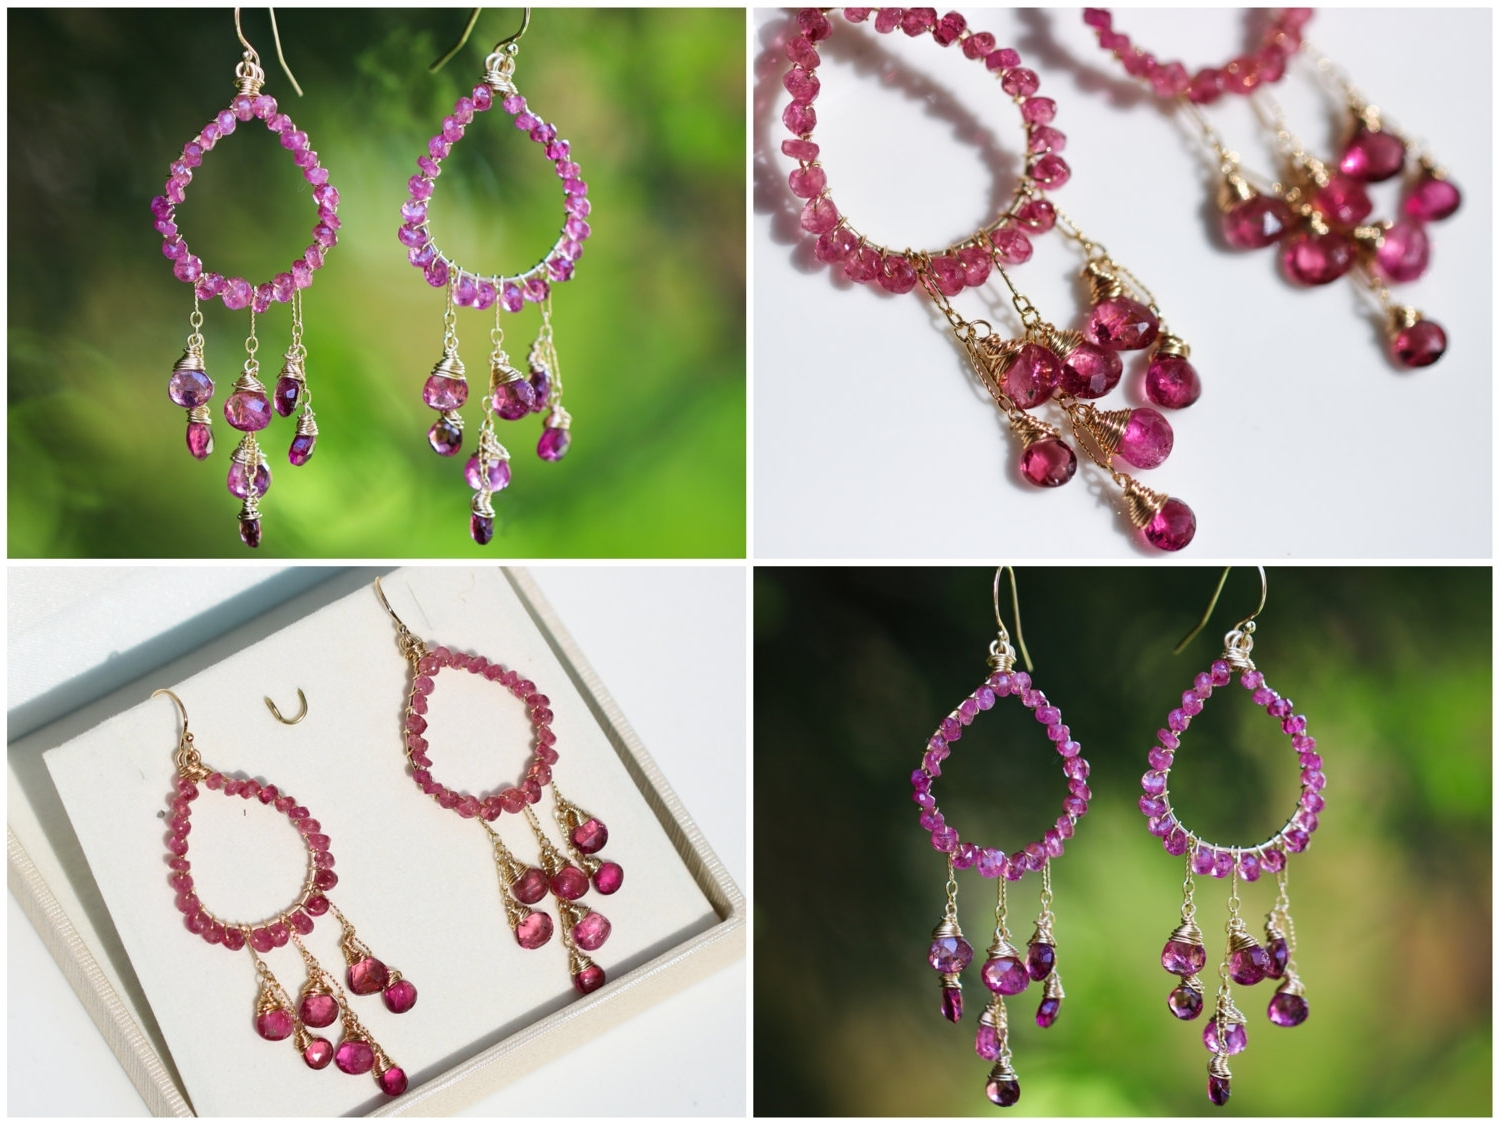 Fuschia Chandelier Pertaining To Best And Newest Chandelier : Rubellite Pink Tourmaline Chandelier Earrings In Gold (View 7 of 20)